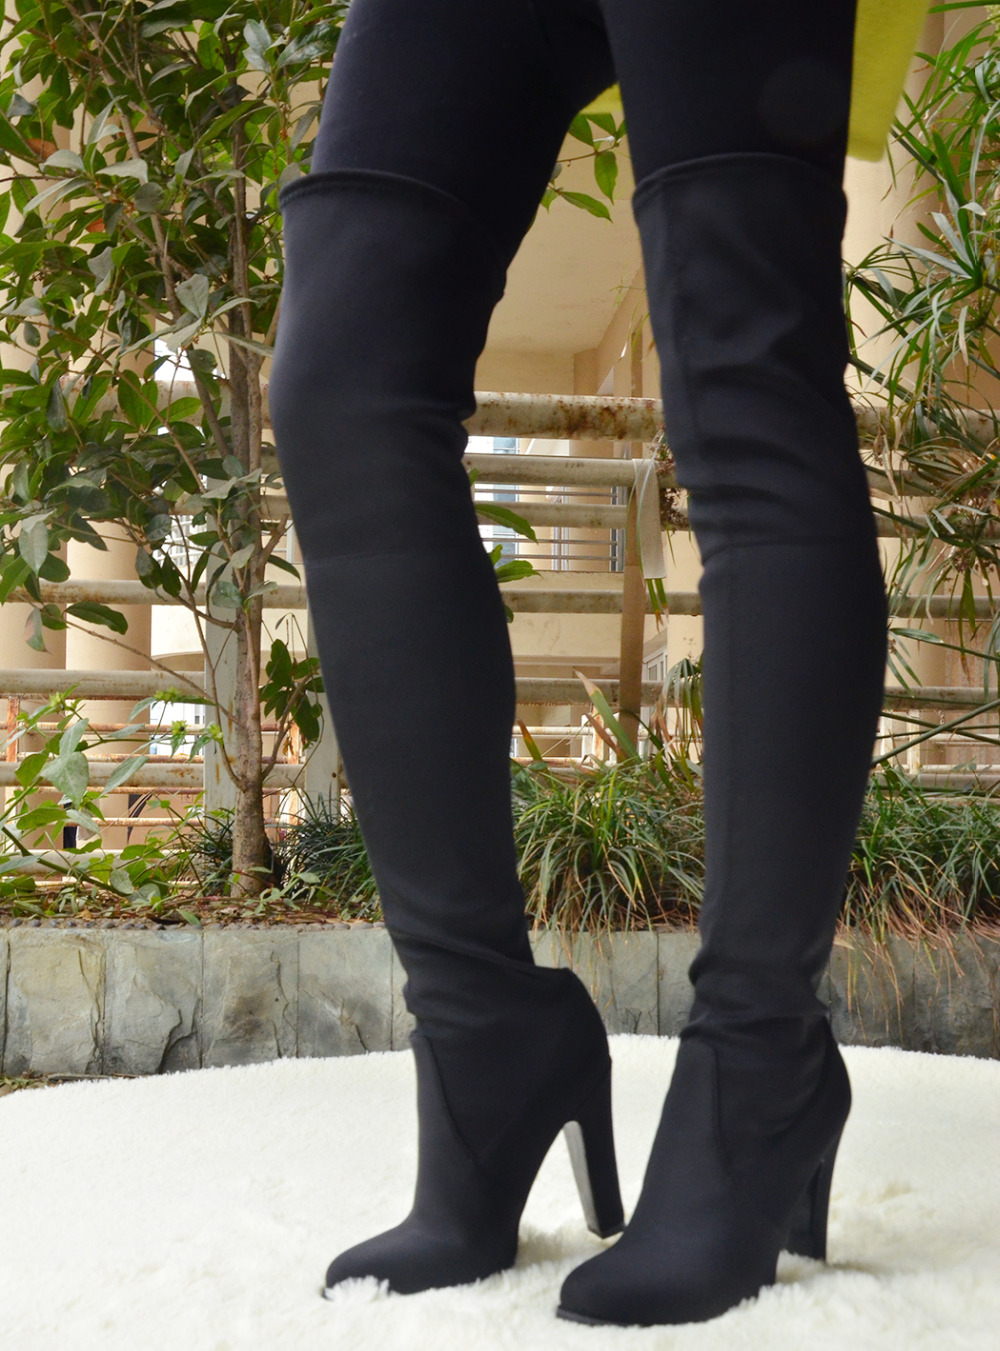 Shofoo Women Black Long Boots Round Toe High Heels Over The Knee Boots Pleated Motorcycle High Winter Boots, plus size 5-14